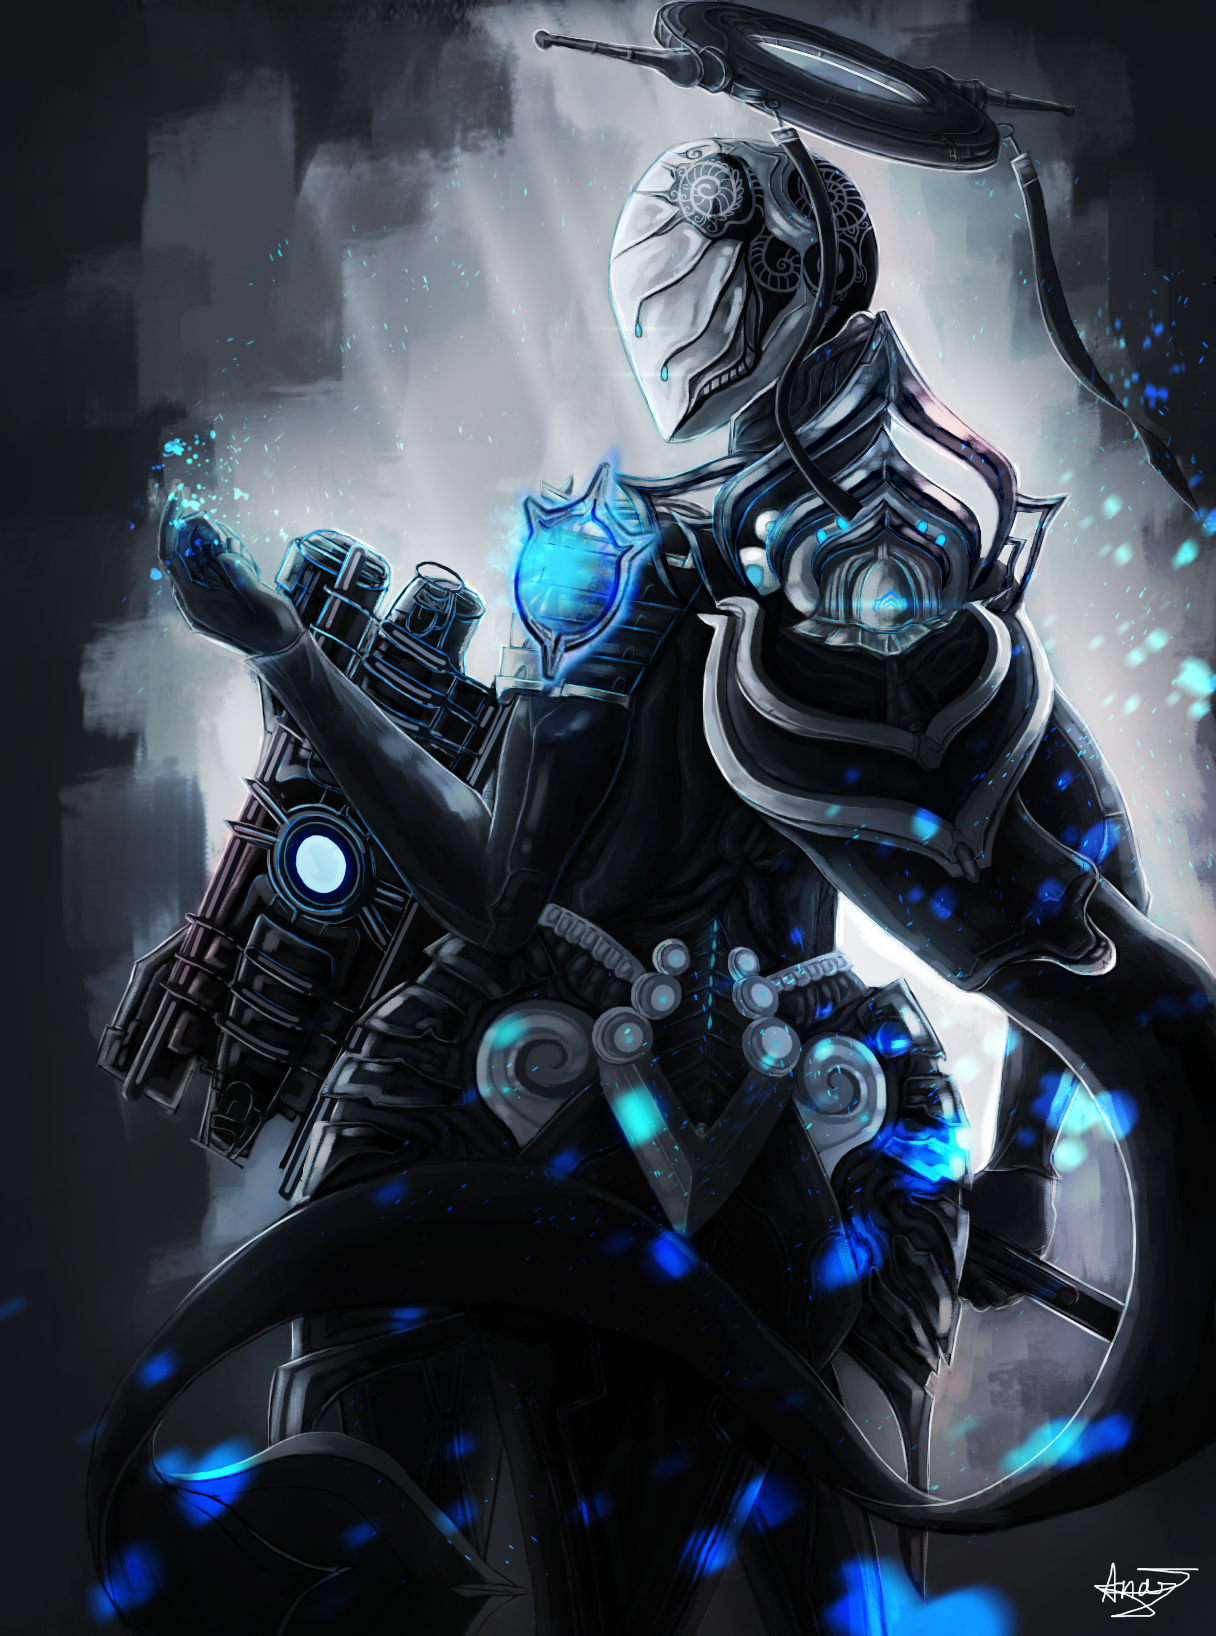 warframe___trinity___speedpaint__by_anav